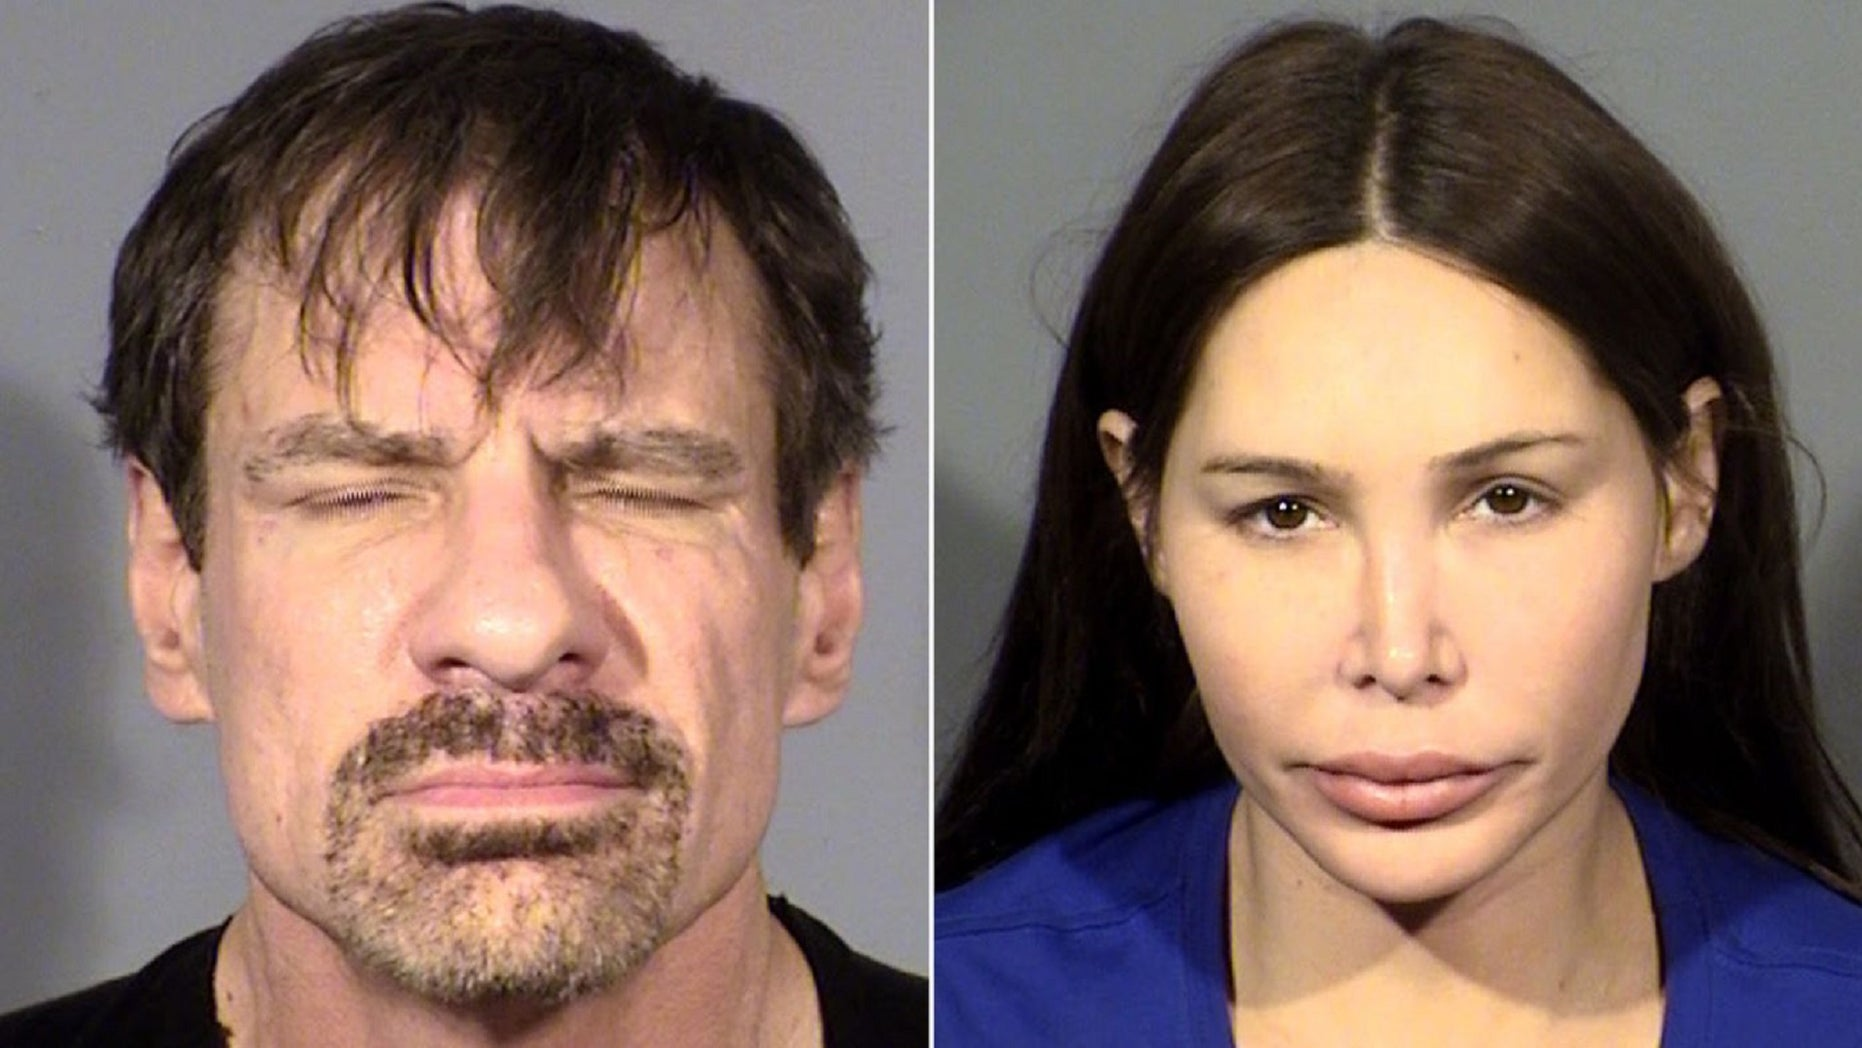 Henry T. Nicholas and Ashley Fargo were arrested Tuesday in a Las Vegas hotel room on suspicion of drug trafficking, court records show.